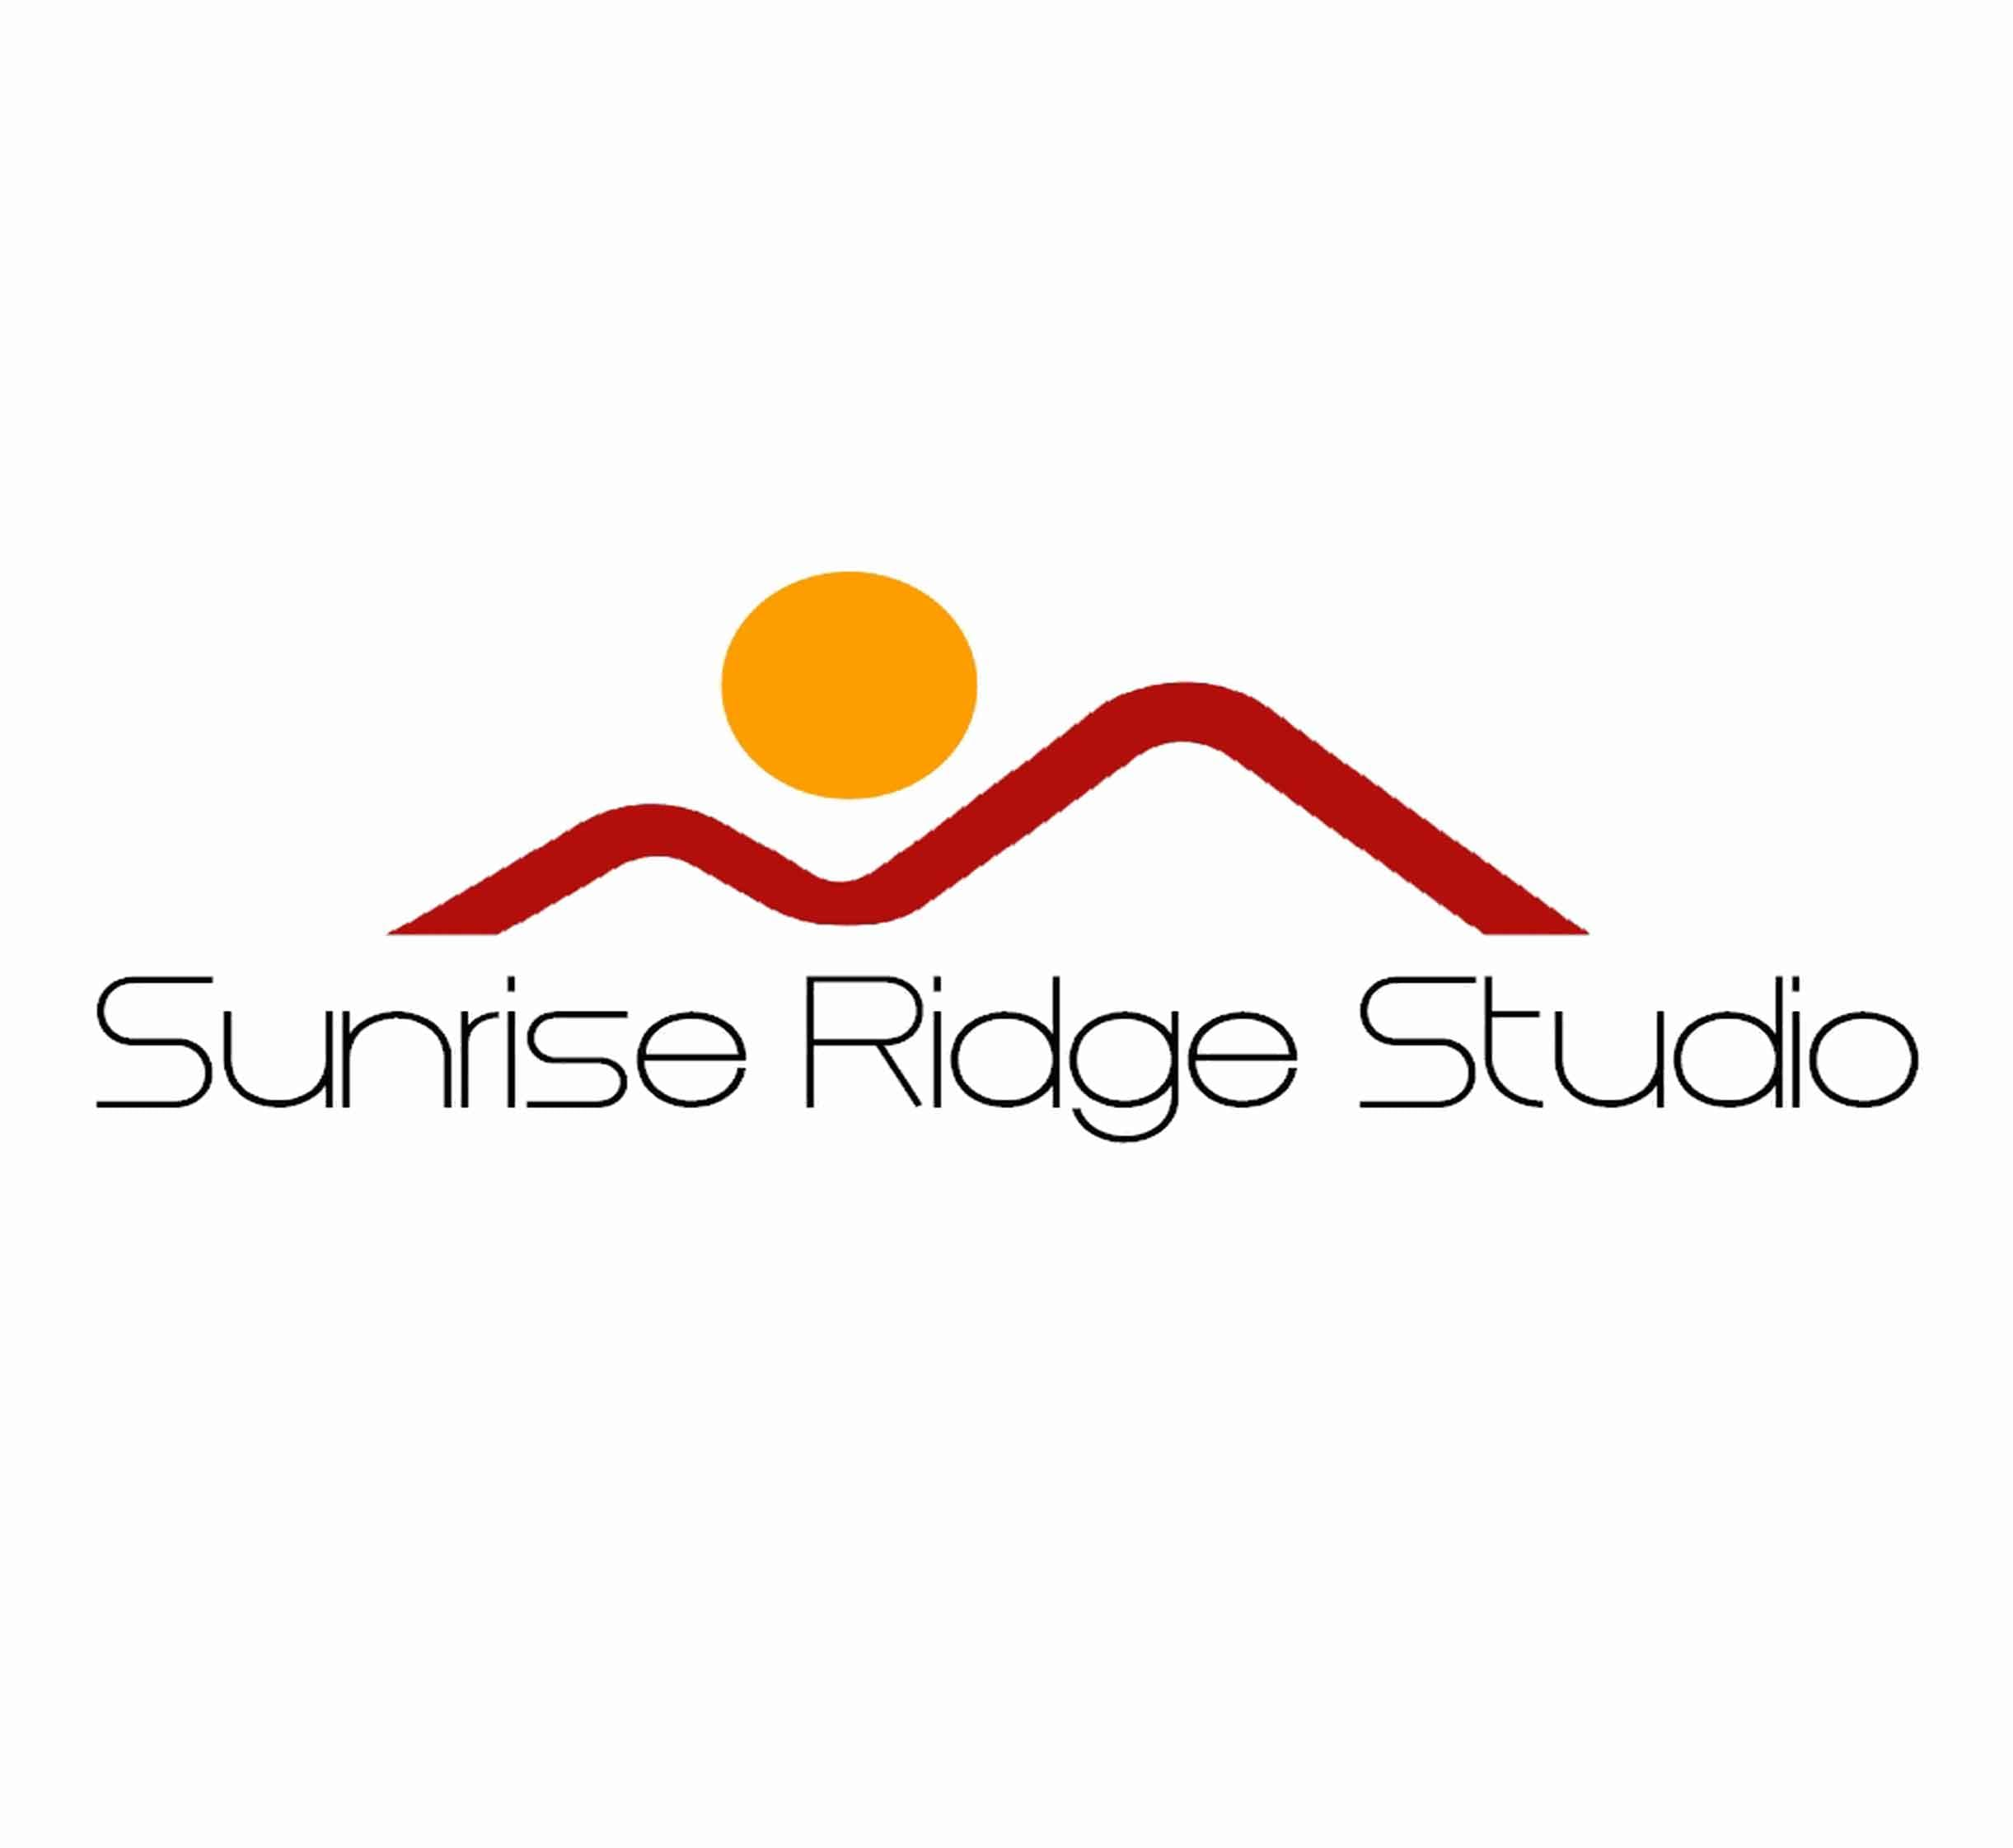 Sunrise Ridge Studio, logo by New Paradigm graphic design, Santa Rosa, CA